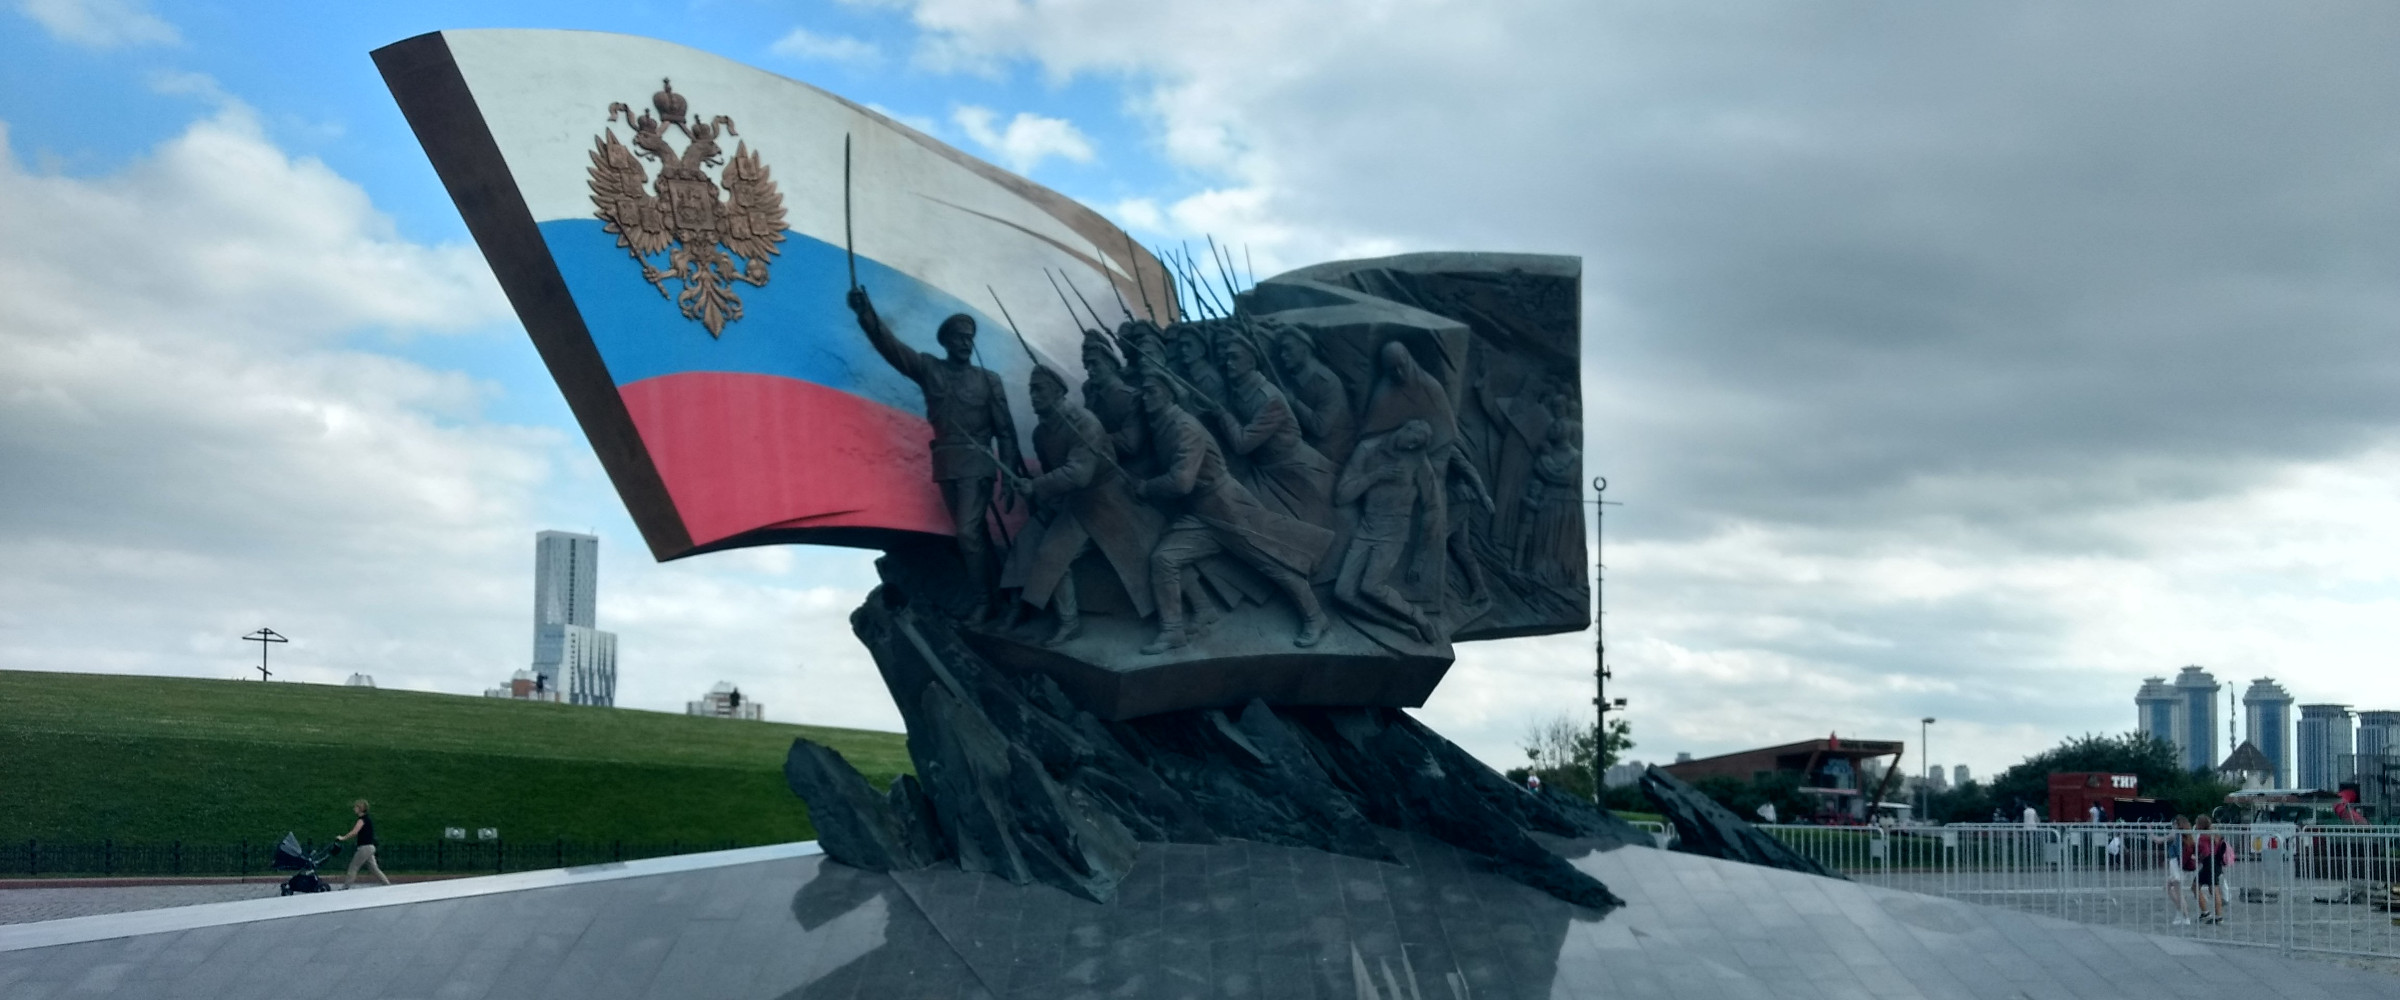 A monument at the victory park in moscow